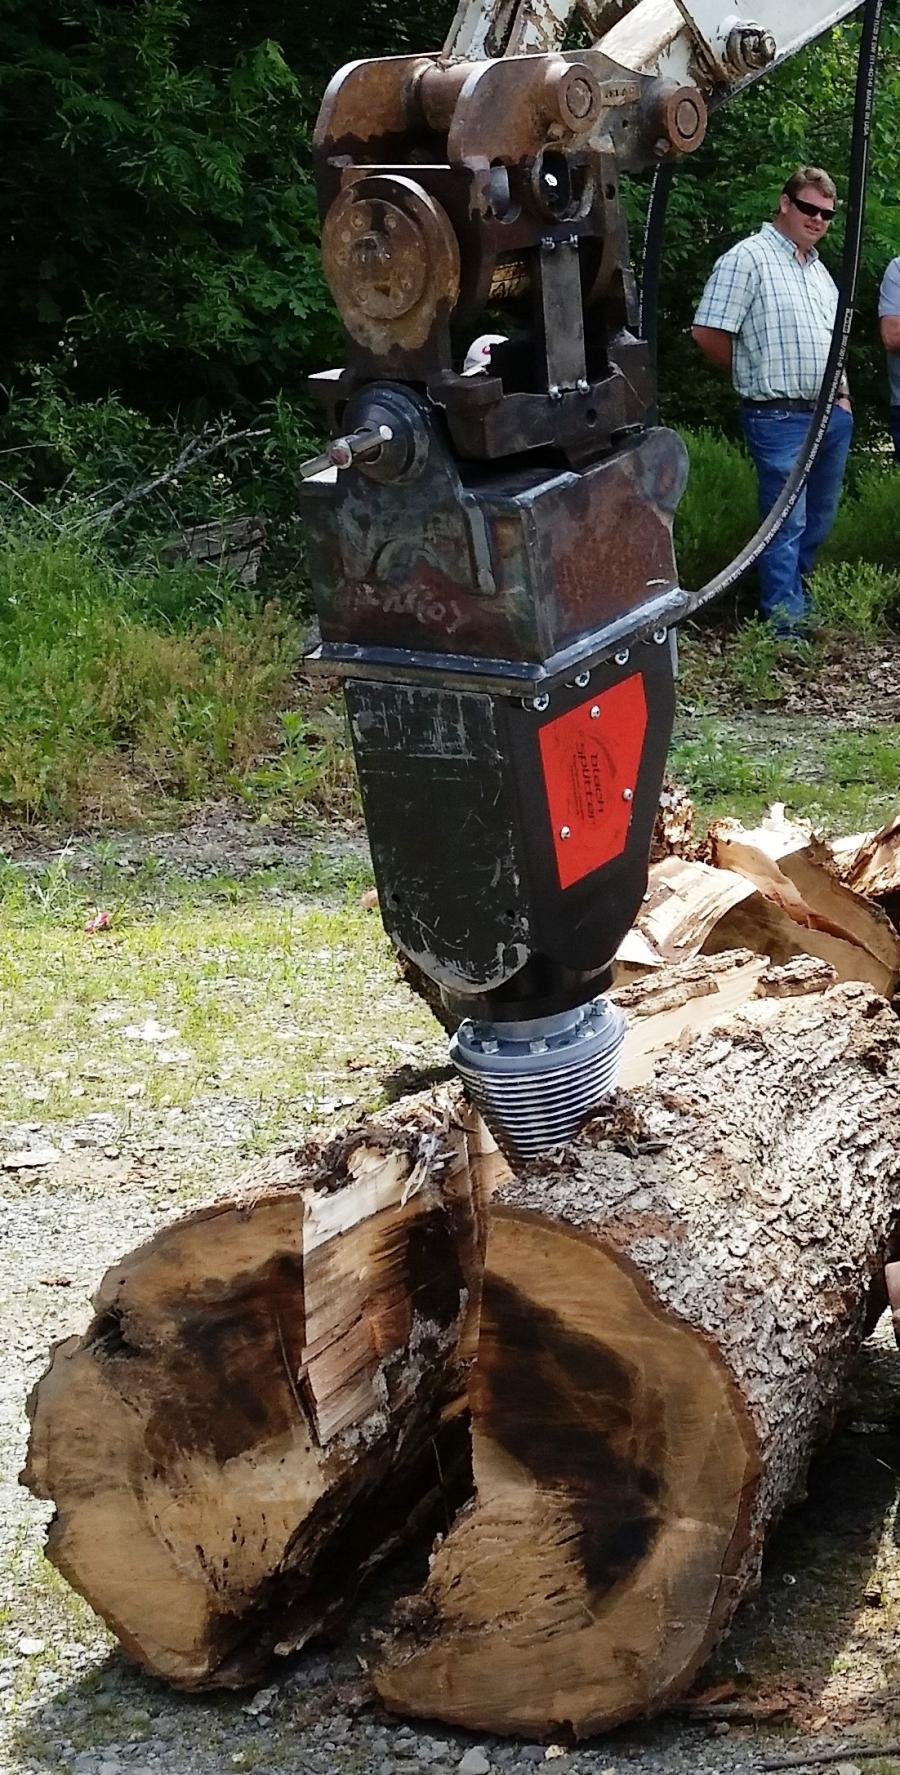 The Black Splitter S2 800 cone splitter Out on the Limb Tree Service acquired from Ransome Attachments in 2018 has brought a new level of versatility to its tree service operation.